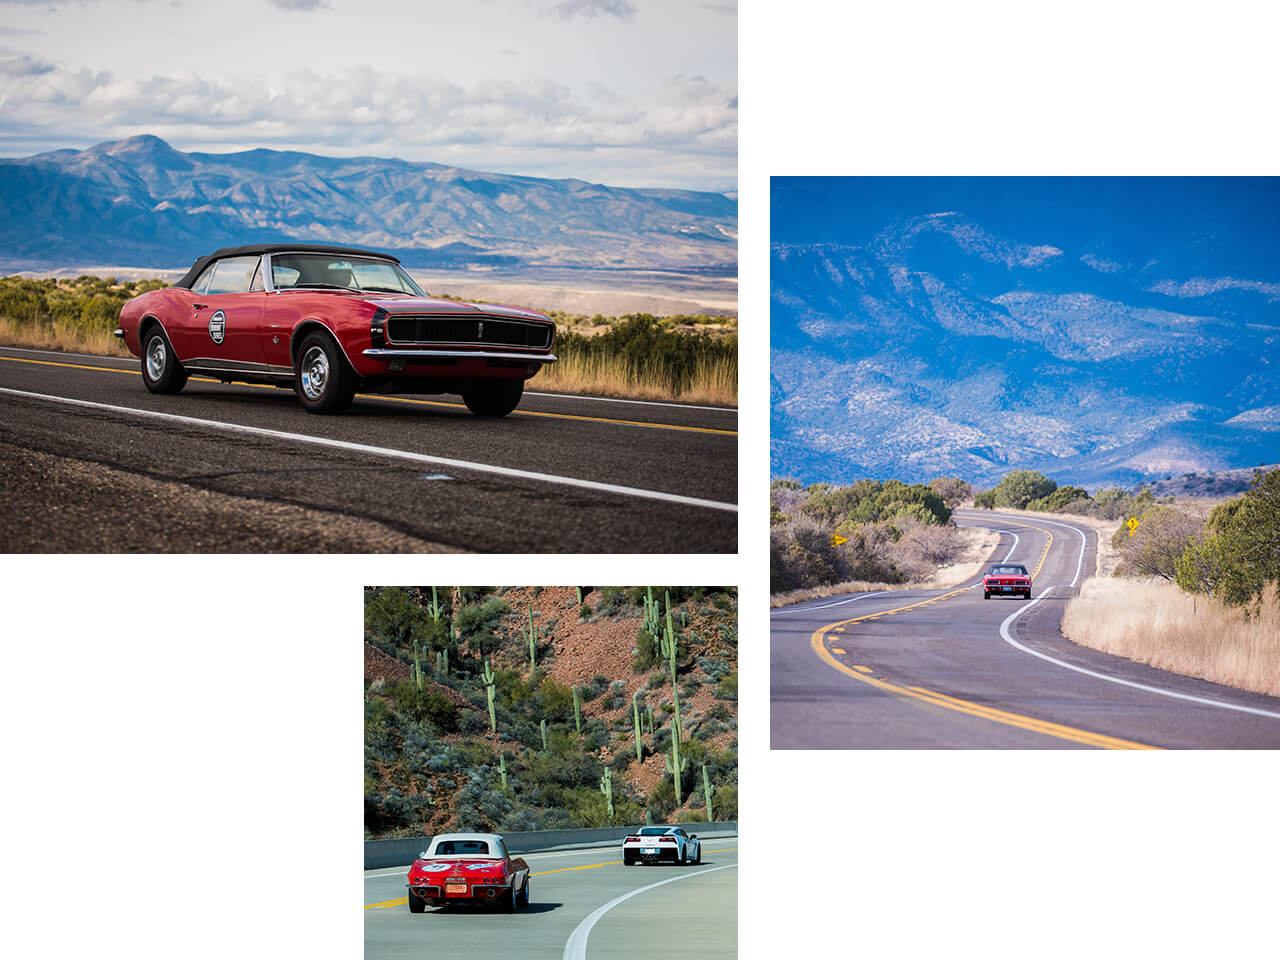 Collector vehicles driving out on an open road with mountains in the background and cacti off in the distance.